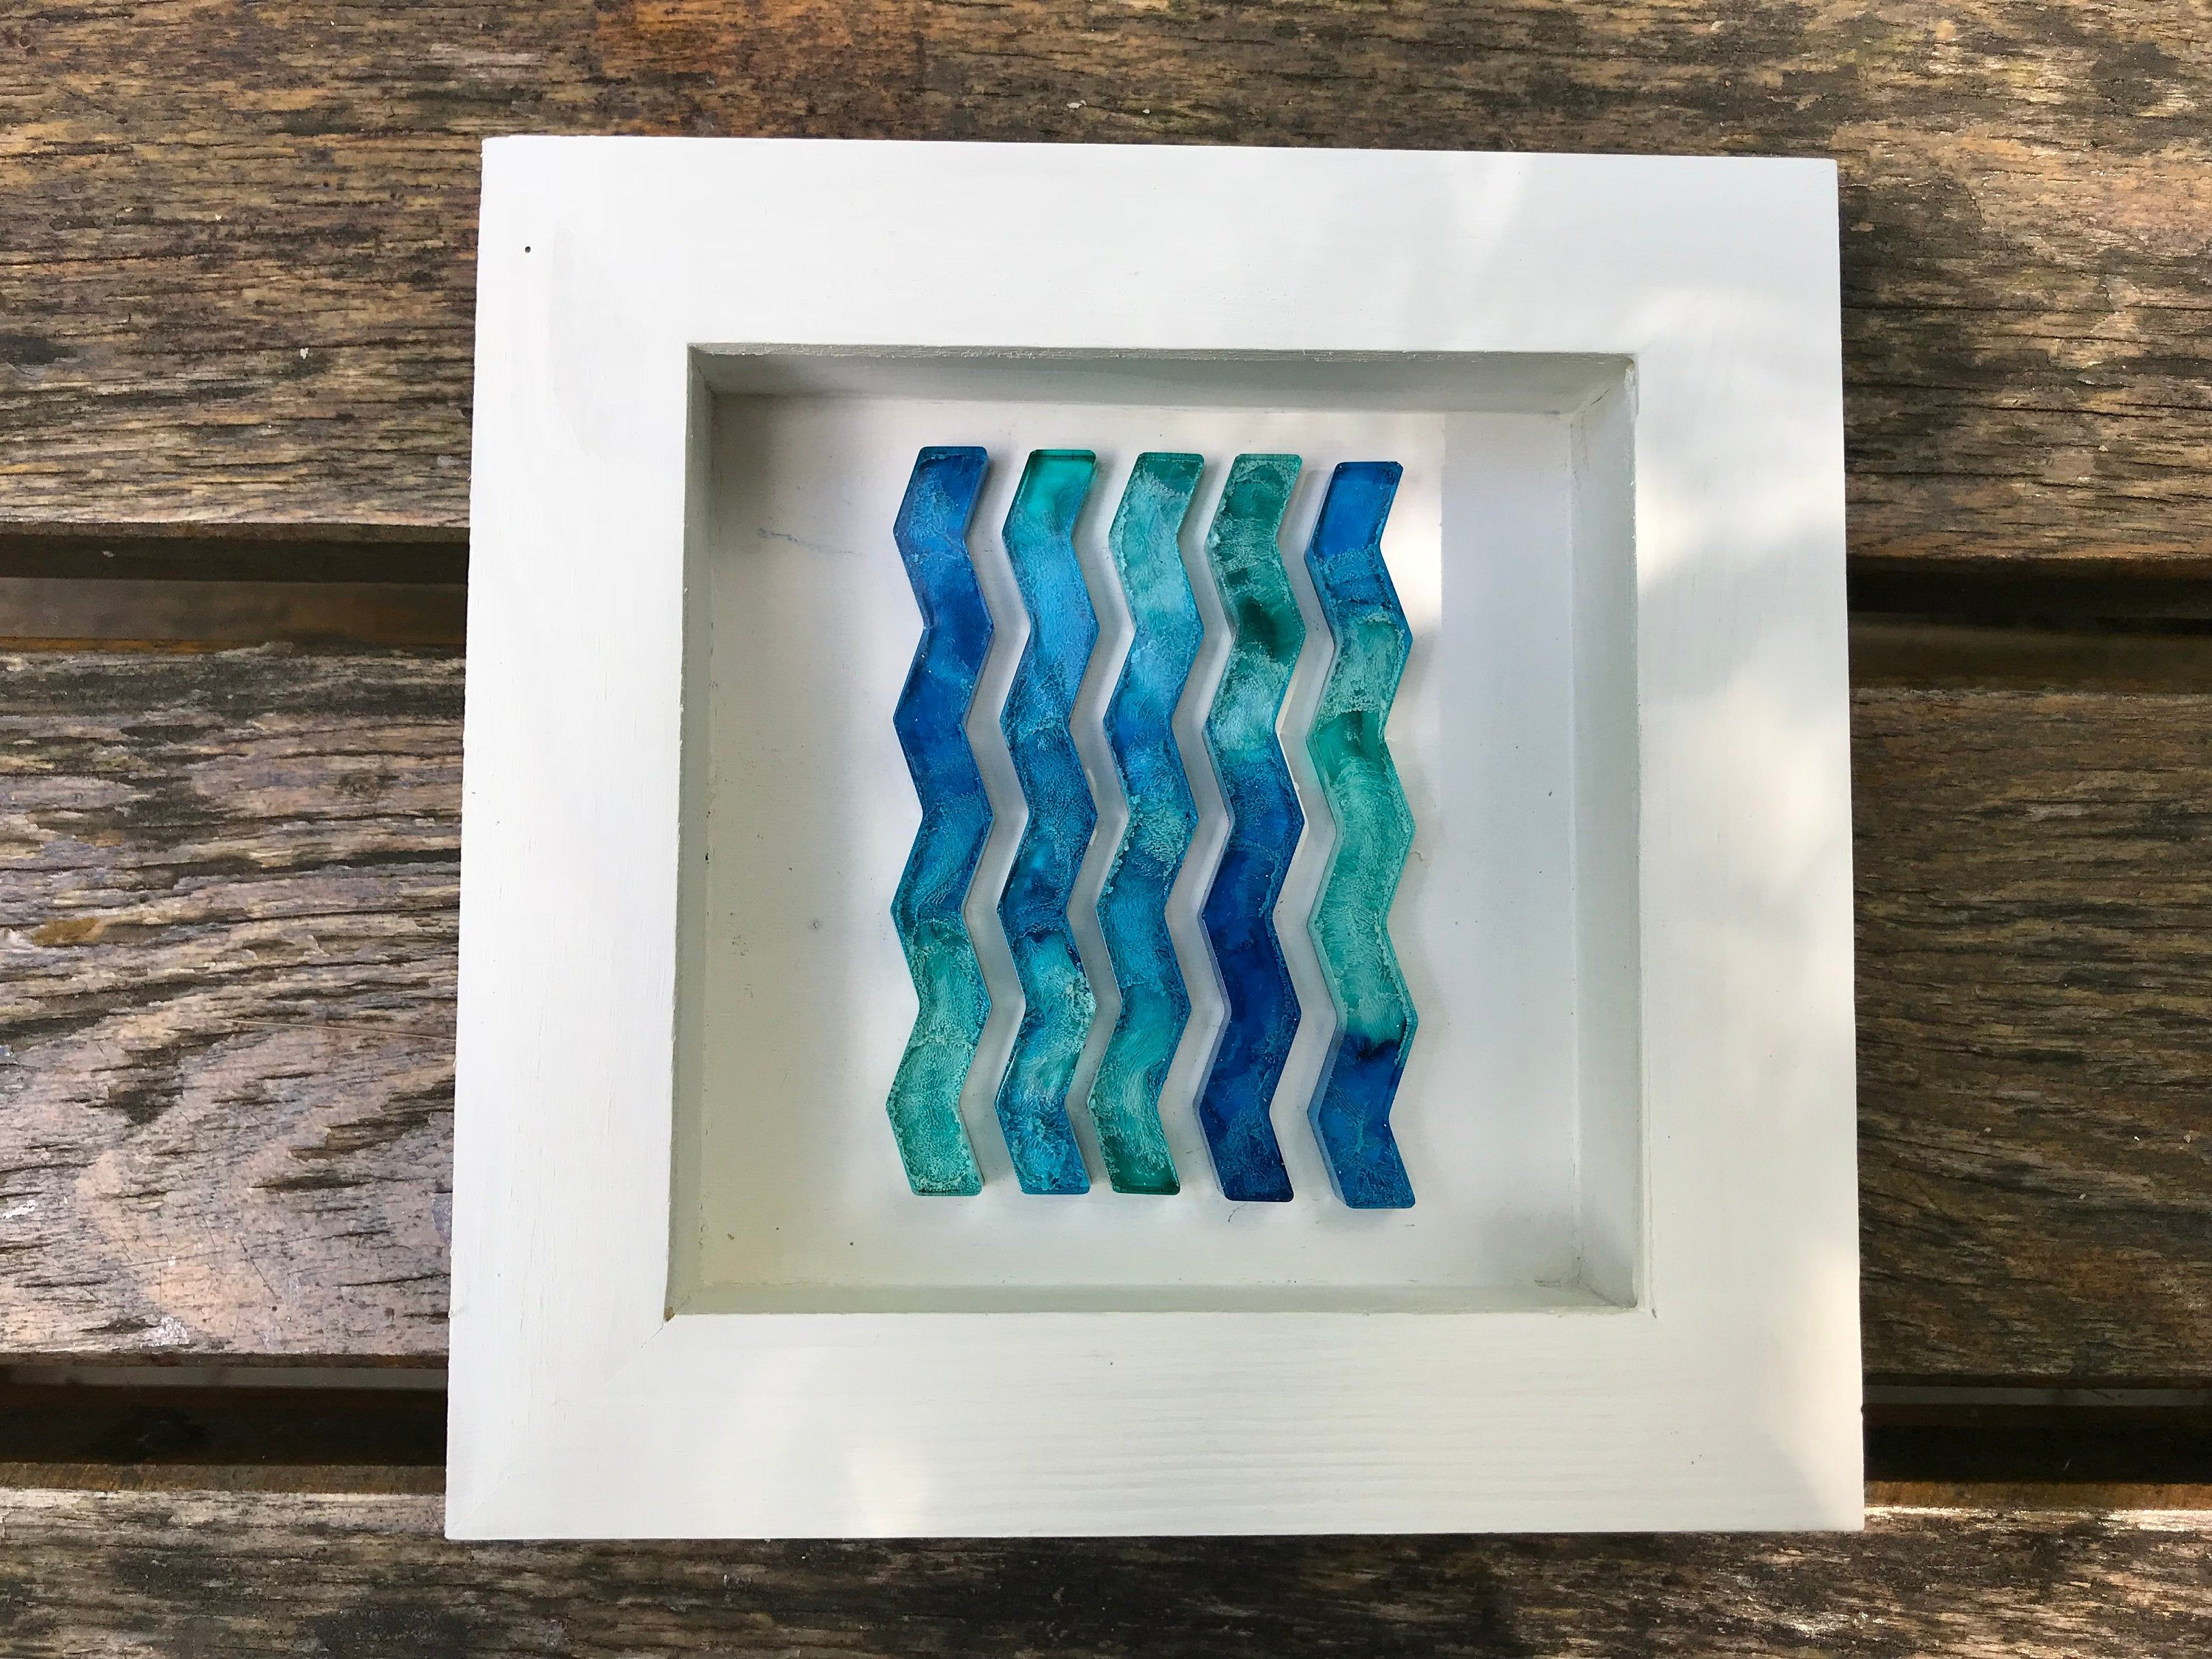 3d Frame With Resin Petri Art Shadowbox Resin Petri Wall Art Etsy Etsy Wall Art Resin Wall Art Frame